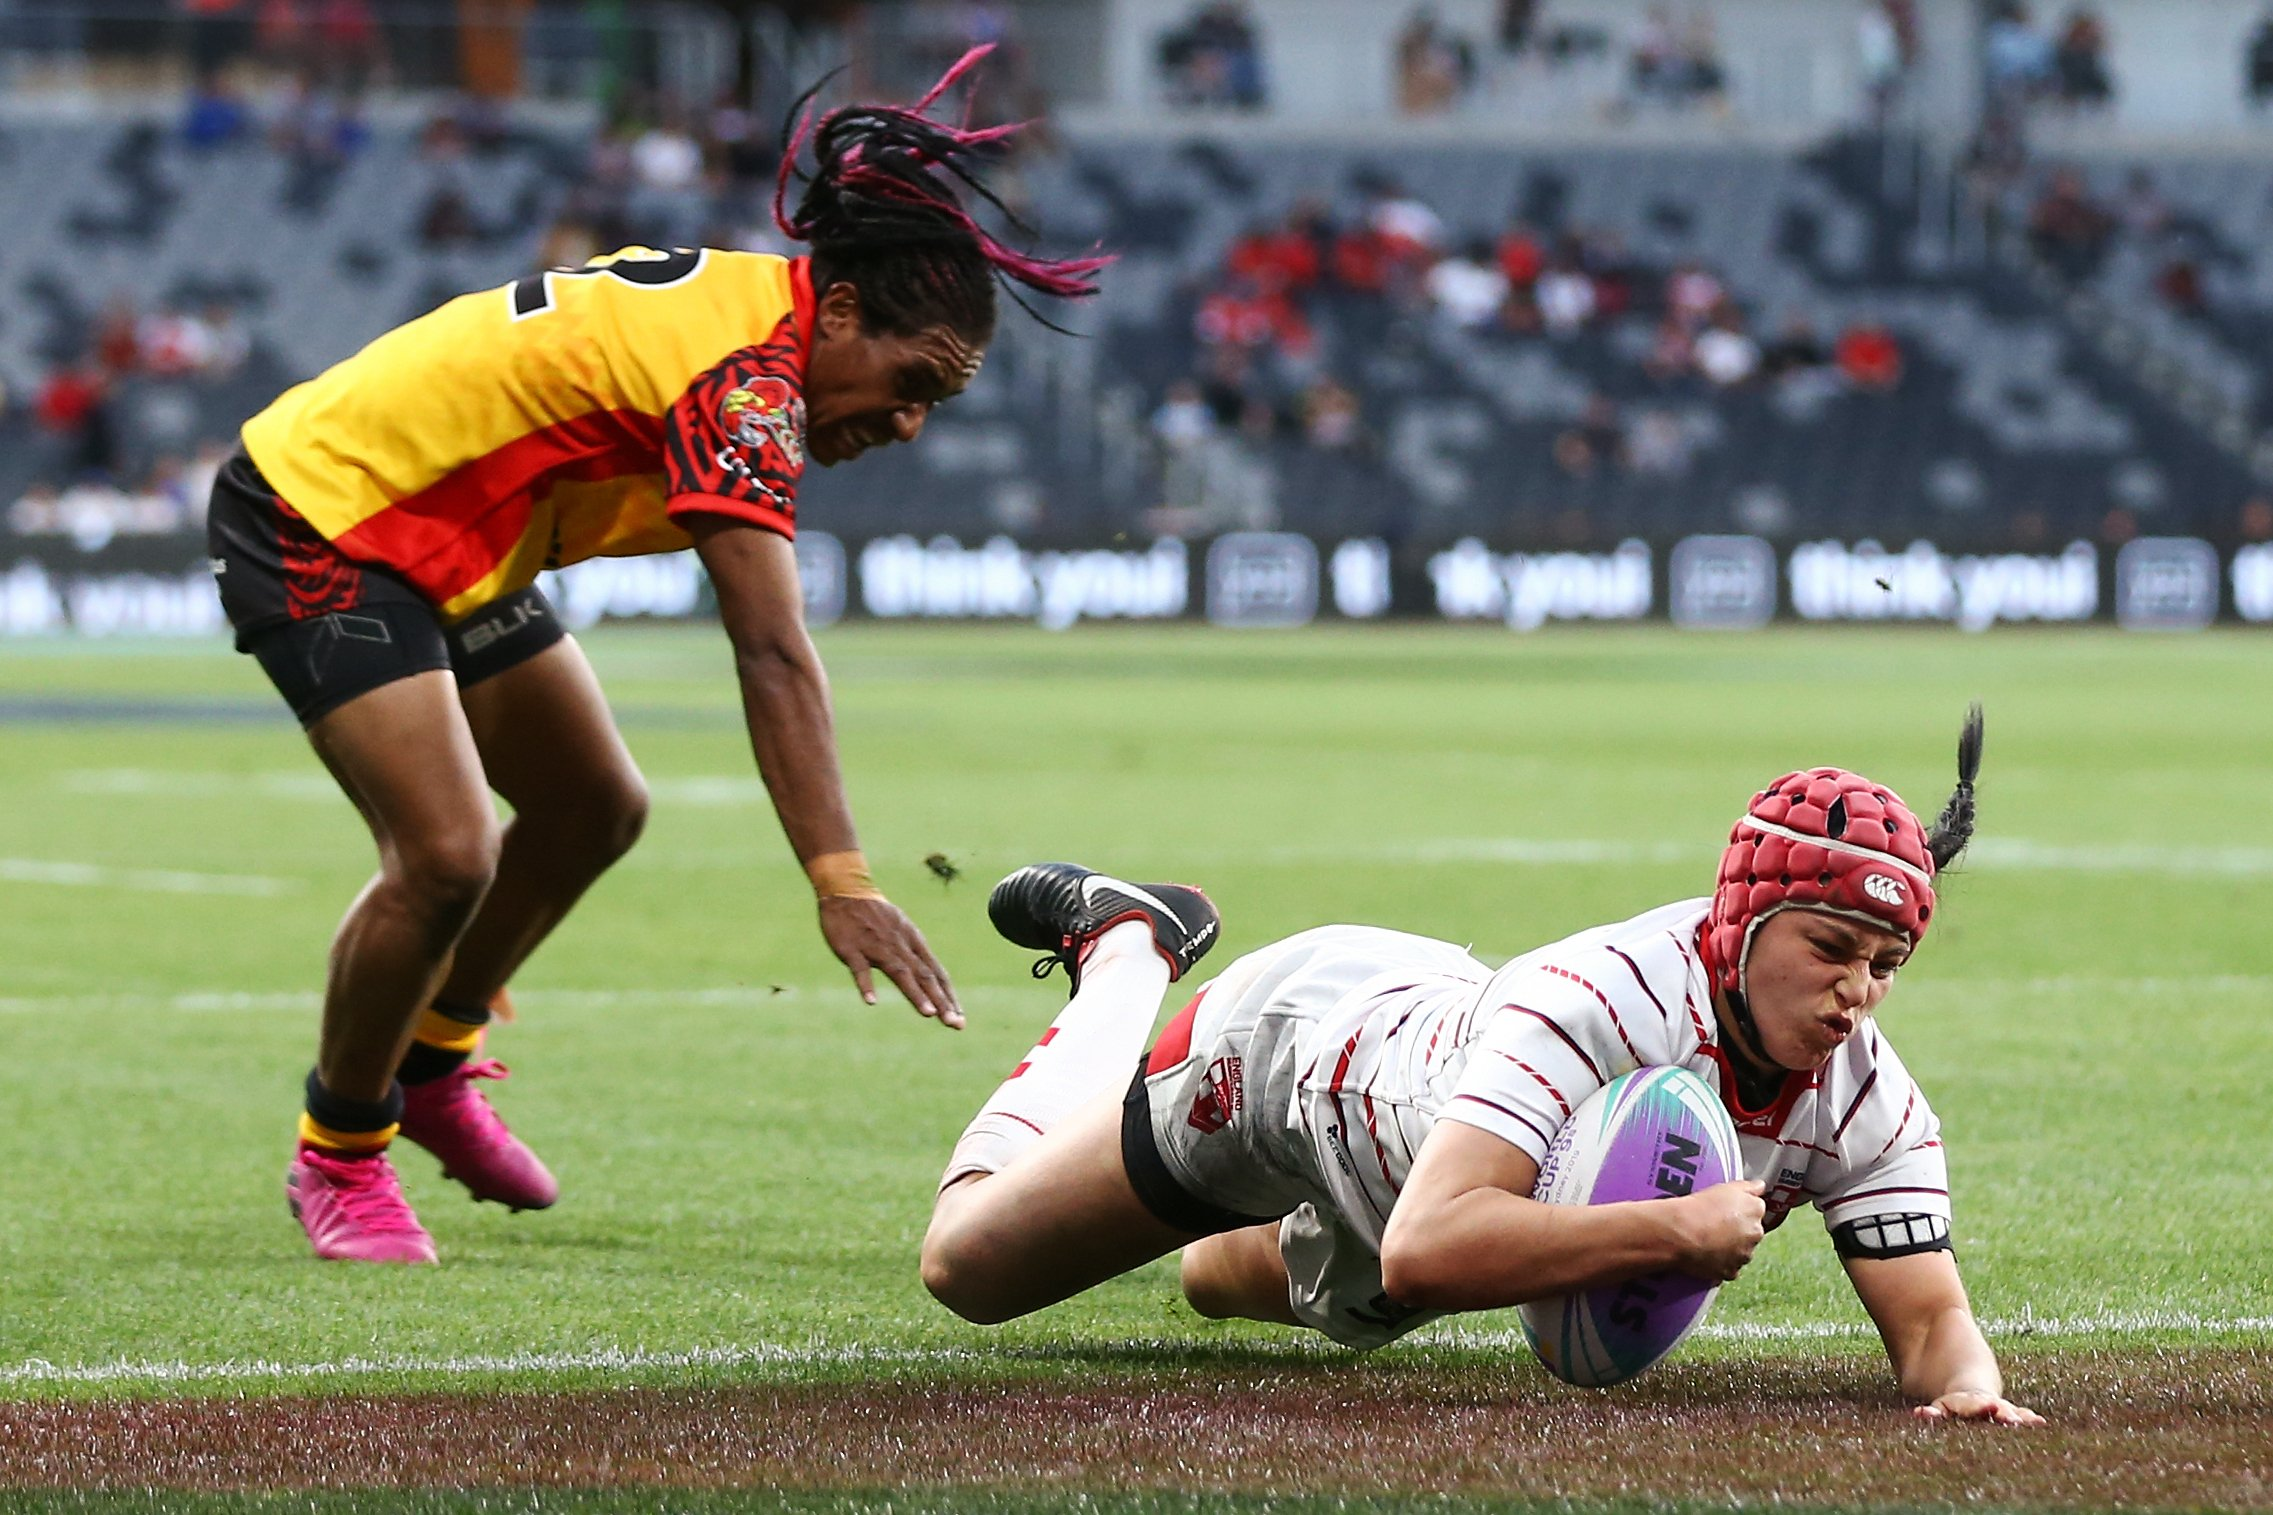 England rugby league captain Emily Rudge hoping for Papua New Guinea double